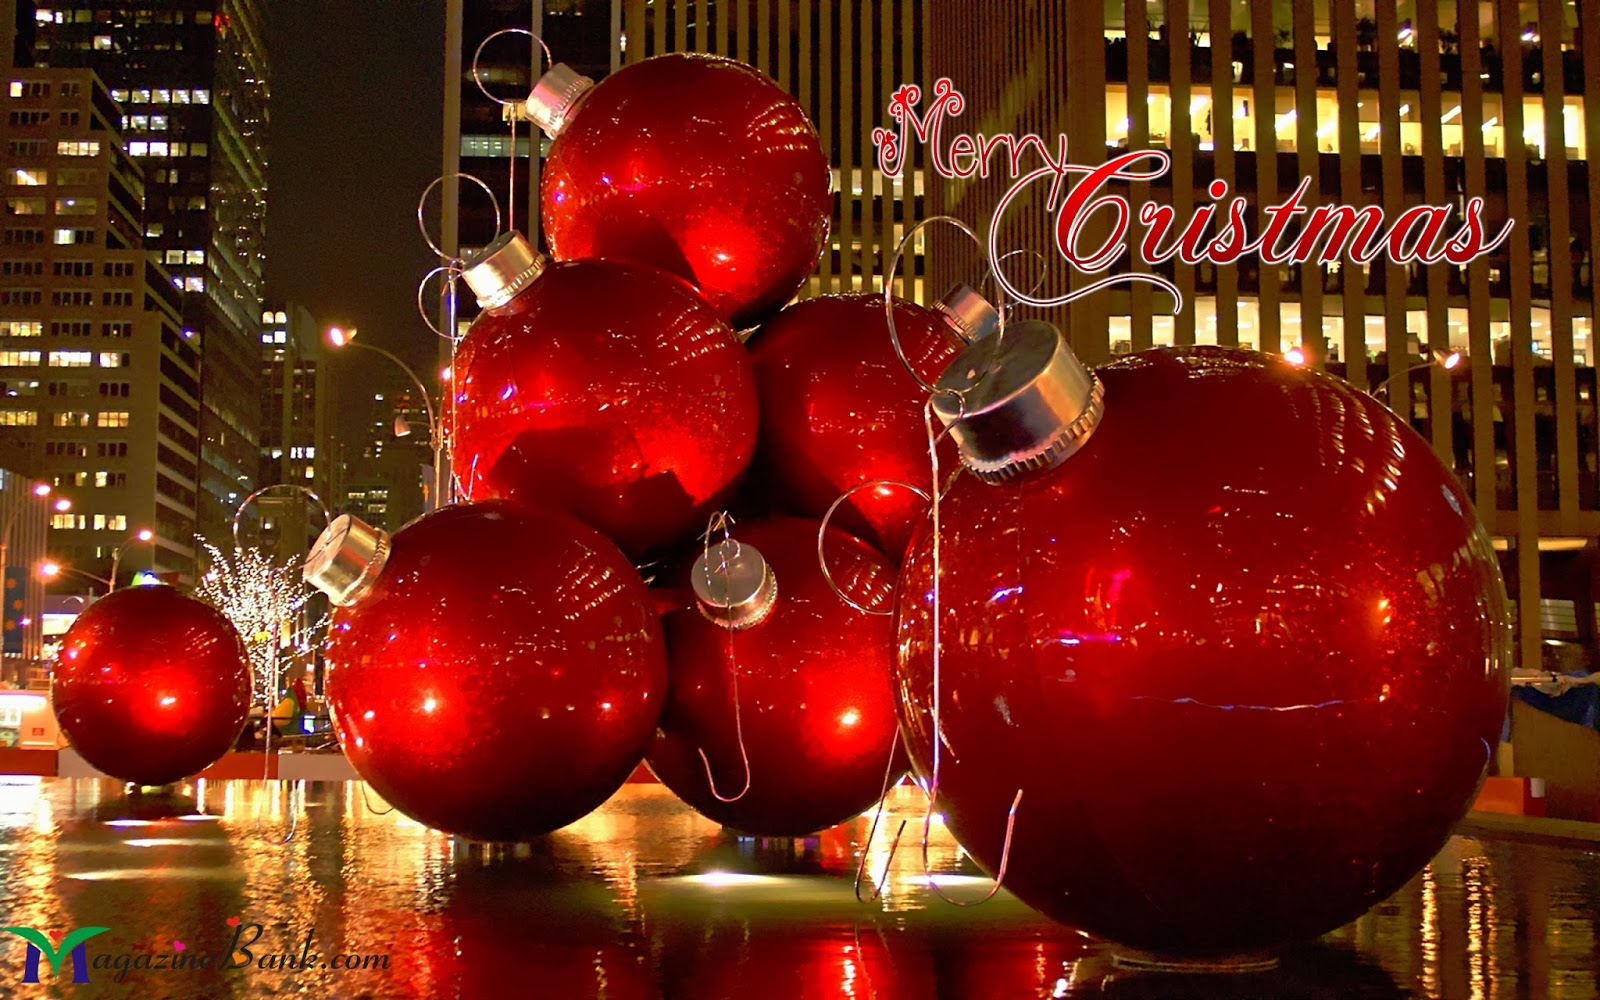 Merry Christmas Holiday Greetings Images And HD Wallpapers 1080P SMS 1600x1000